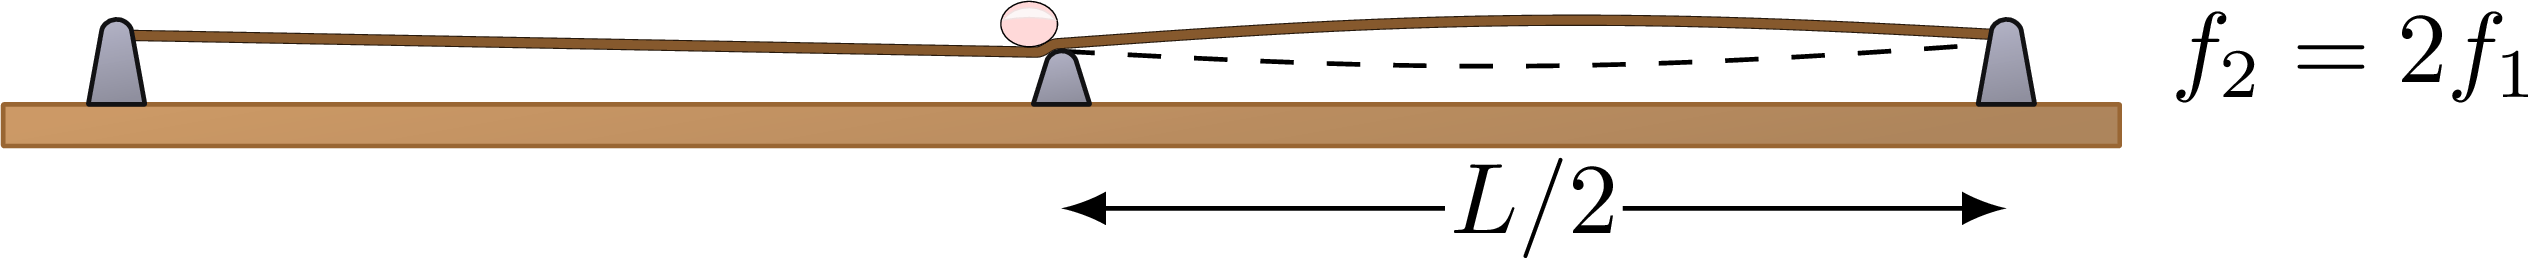 waves_standing_string-004.png